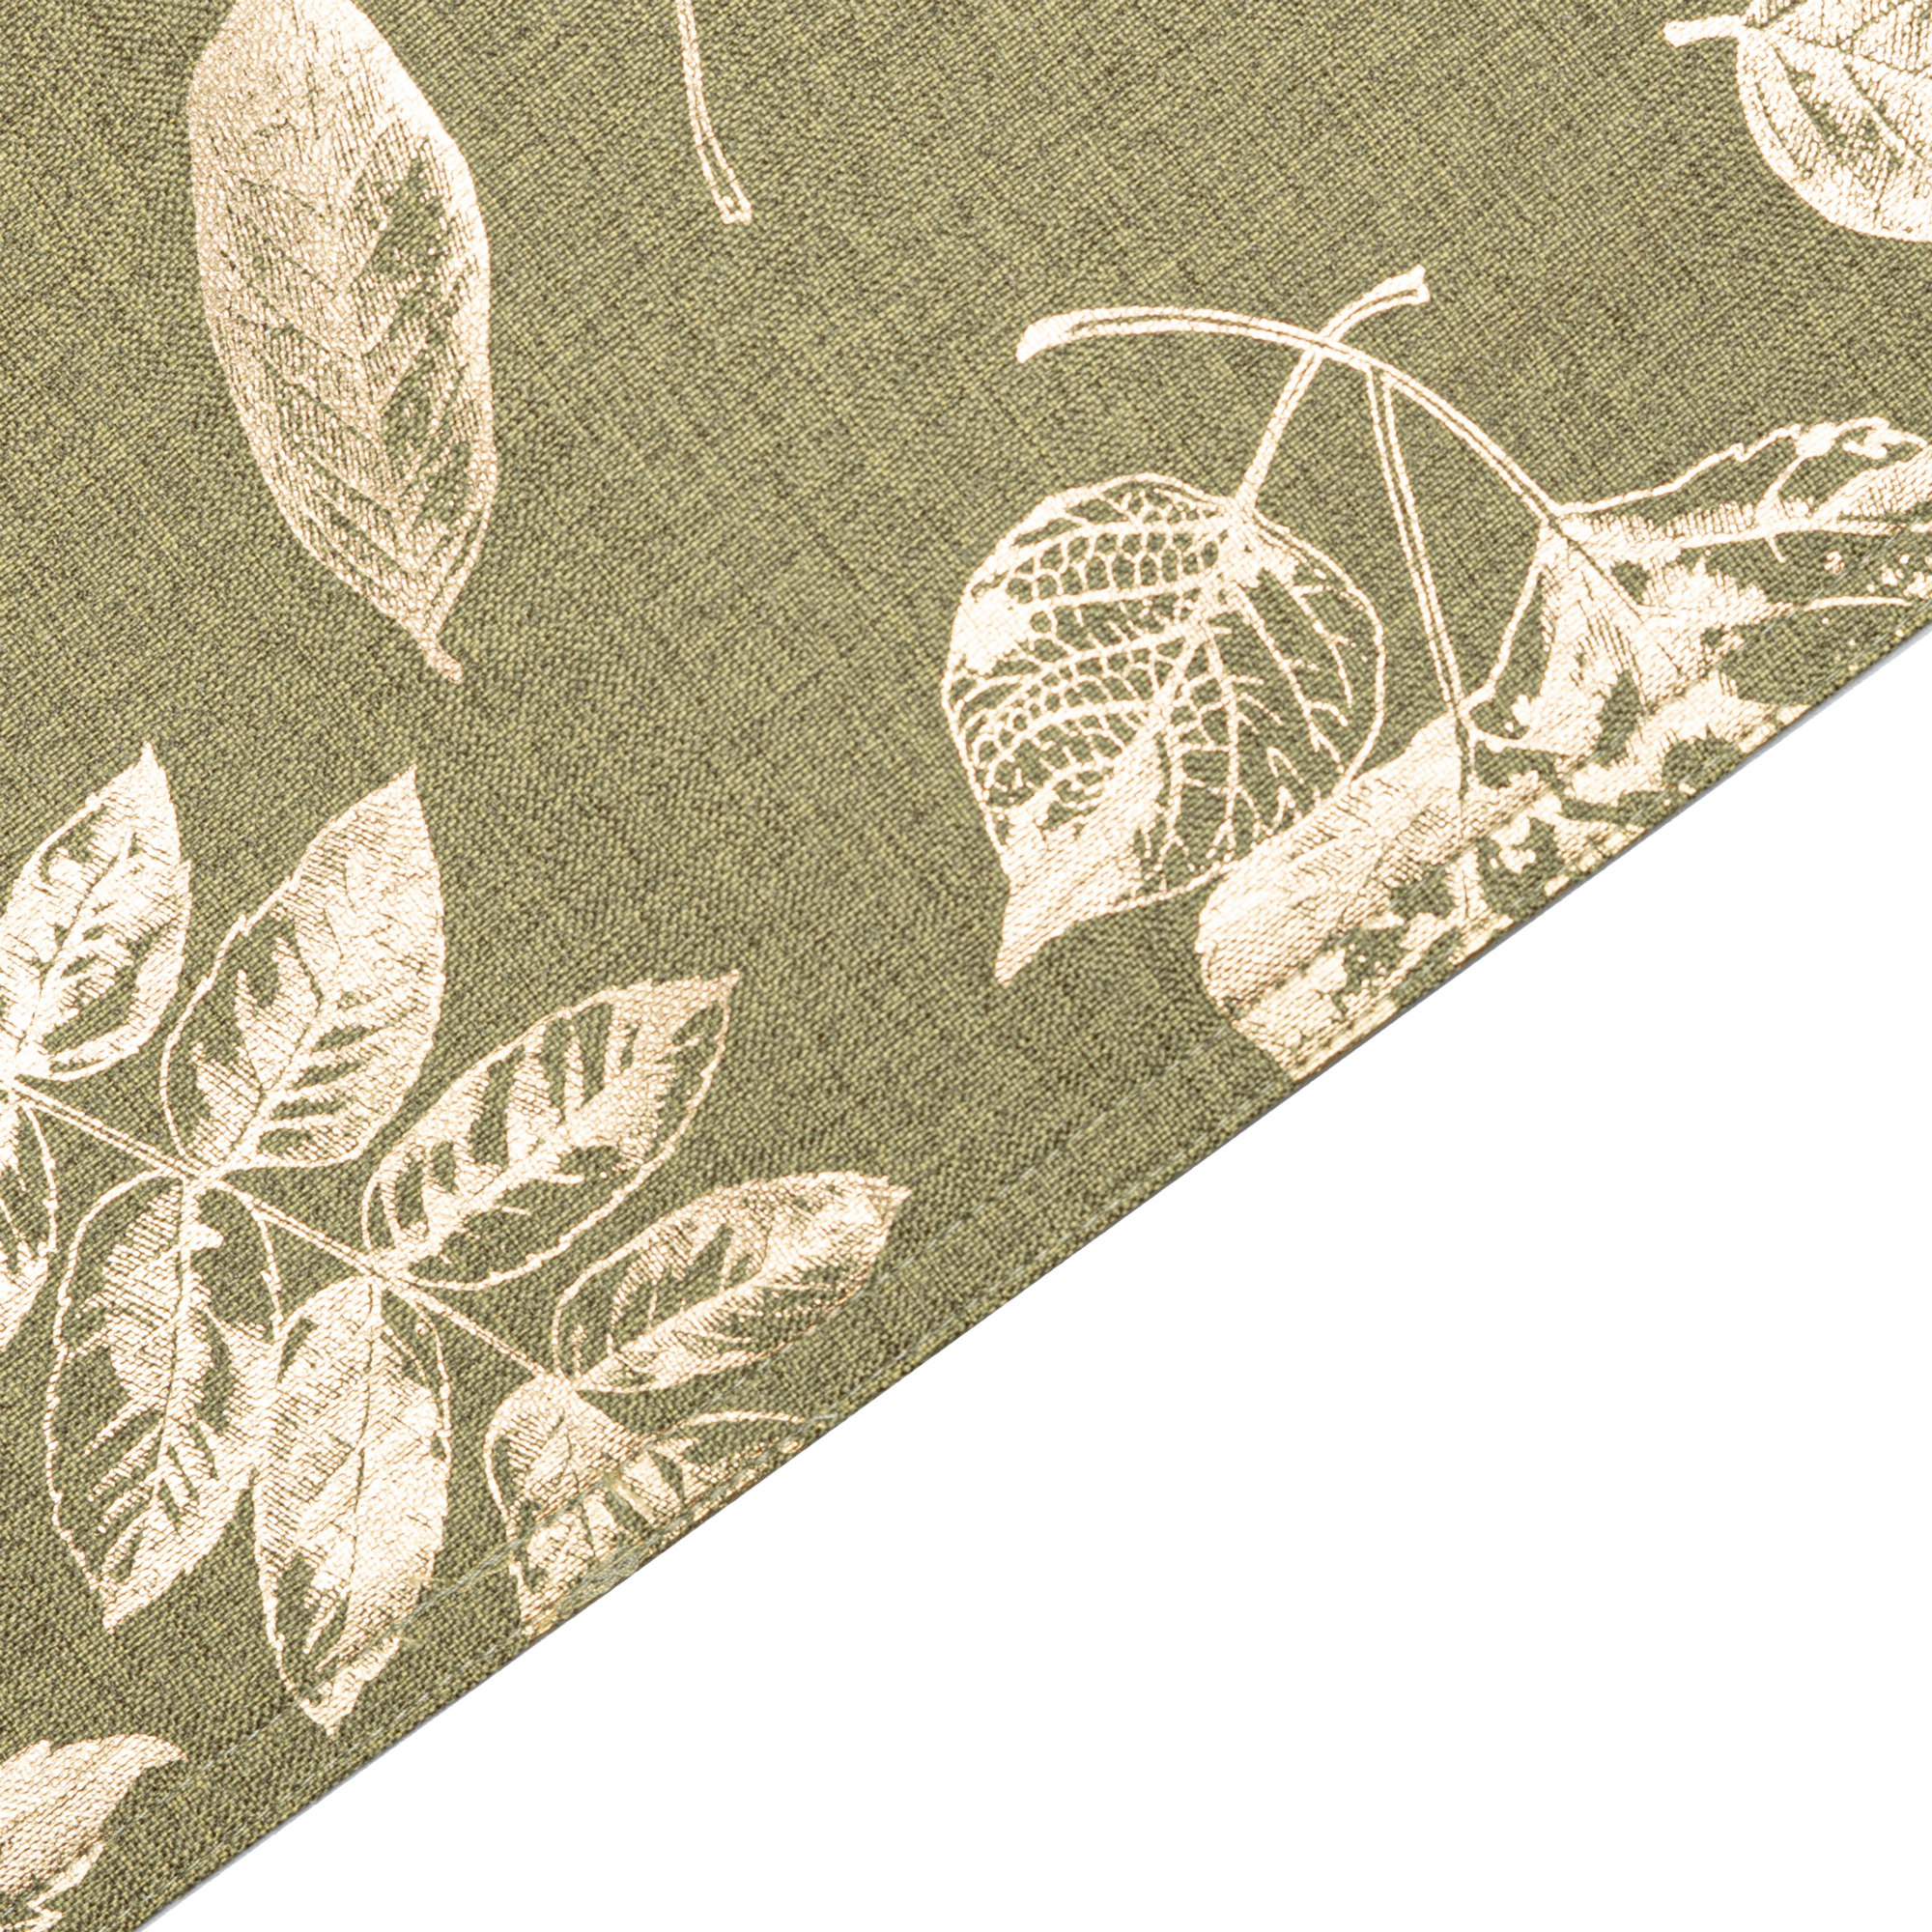 Leaves Foil Printed Rectangle Placemats/Table Mats With Solid Lining. Polycotton. Set Of 2,4 Or 6 (Gold On Green)